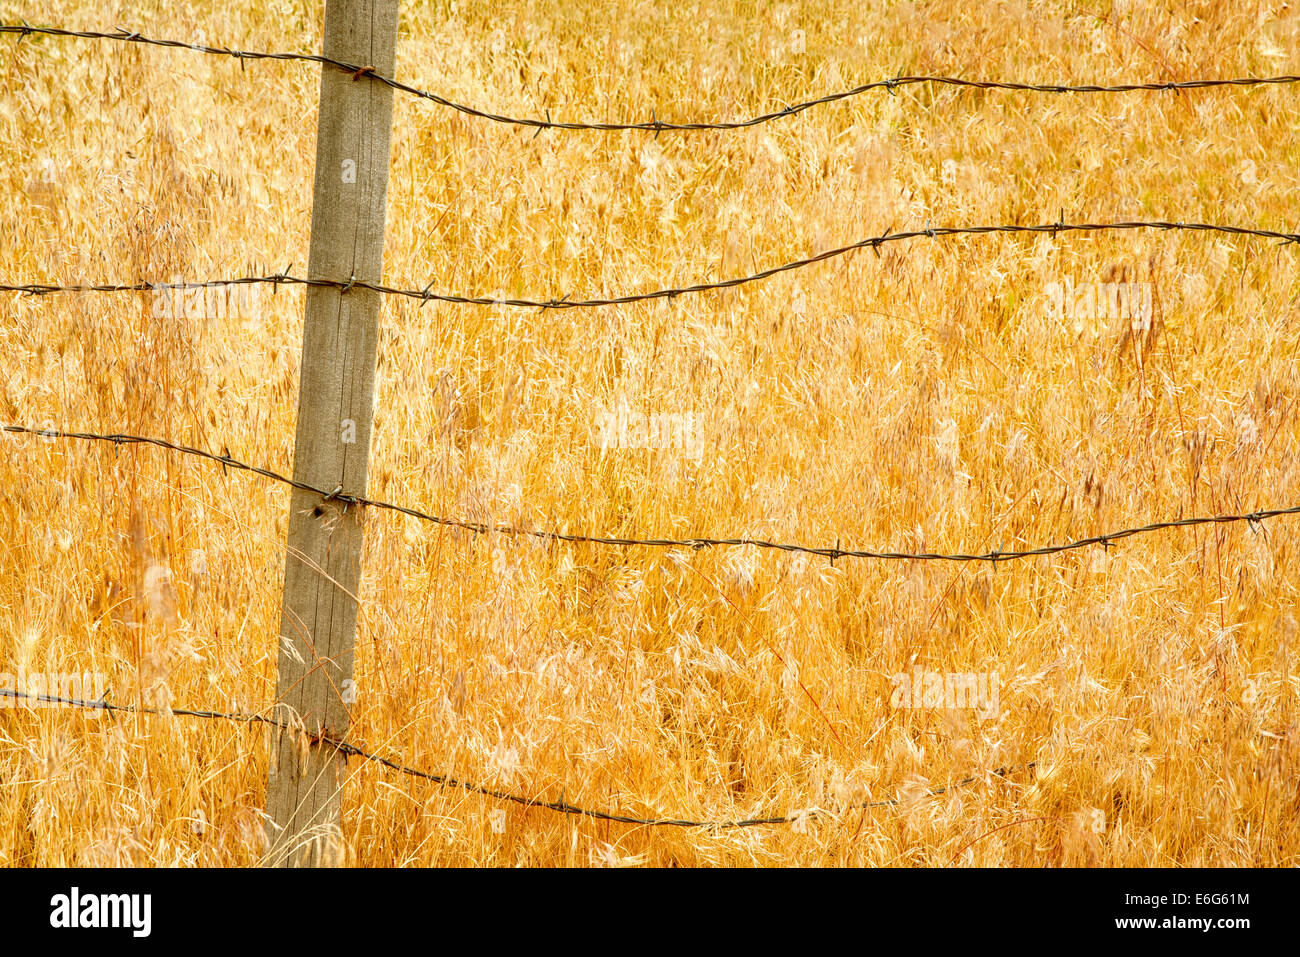 Barbed wire fence and grasses. Oregon.  Hells Canyon National Recreation Area, Oregon - Stock Image